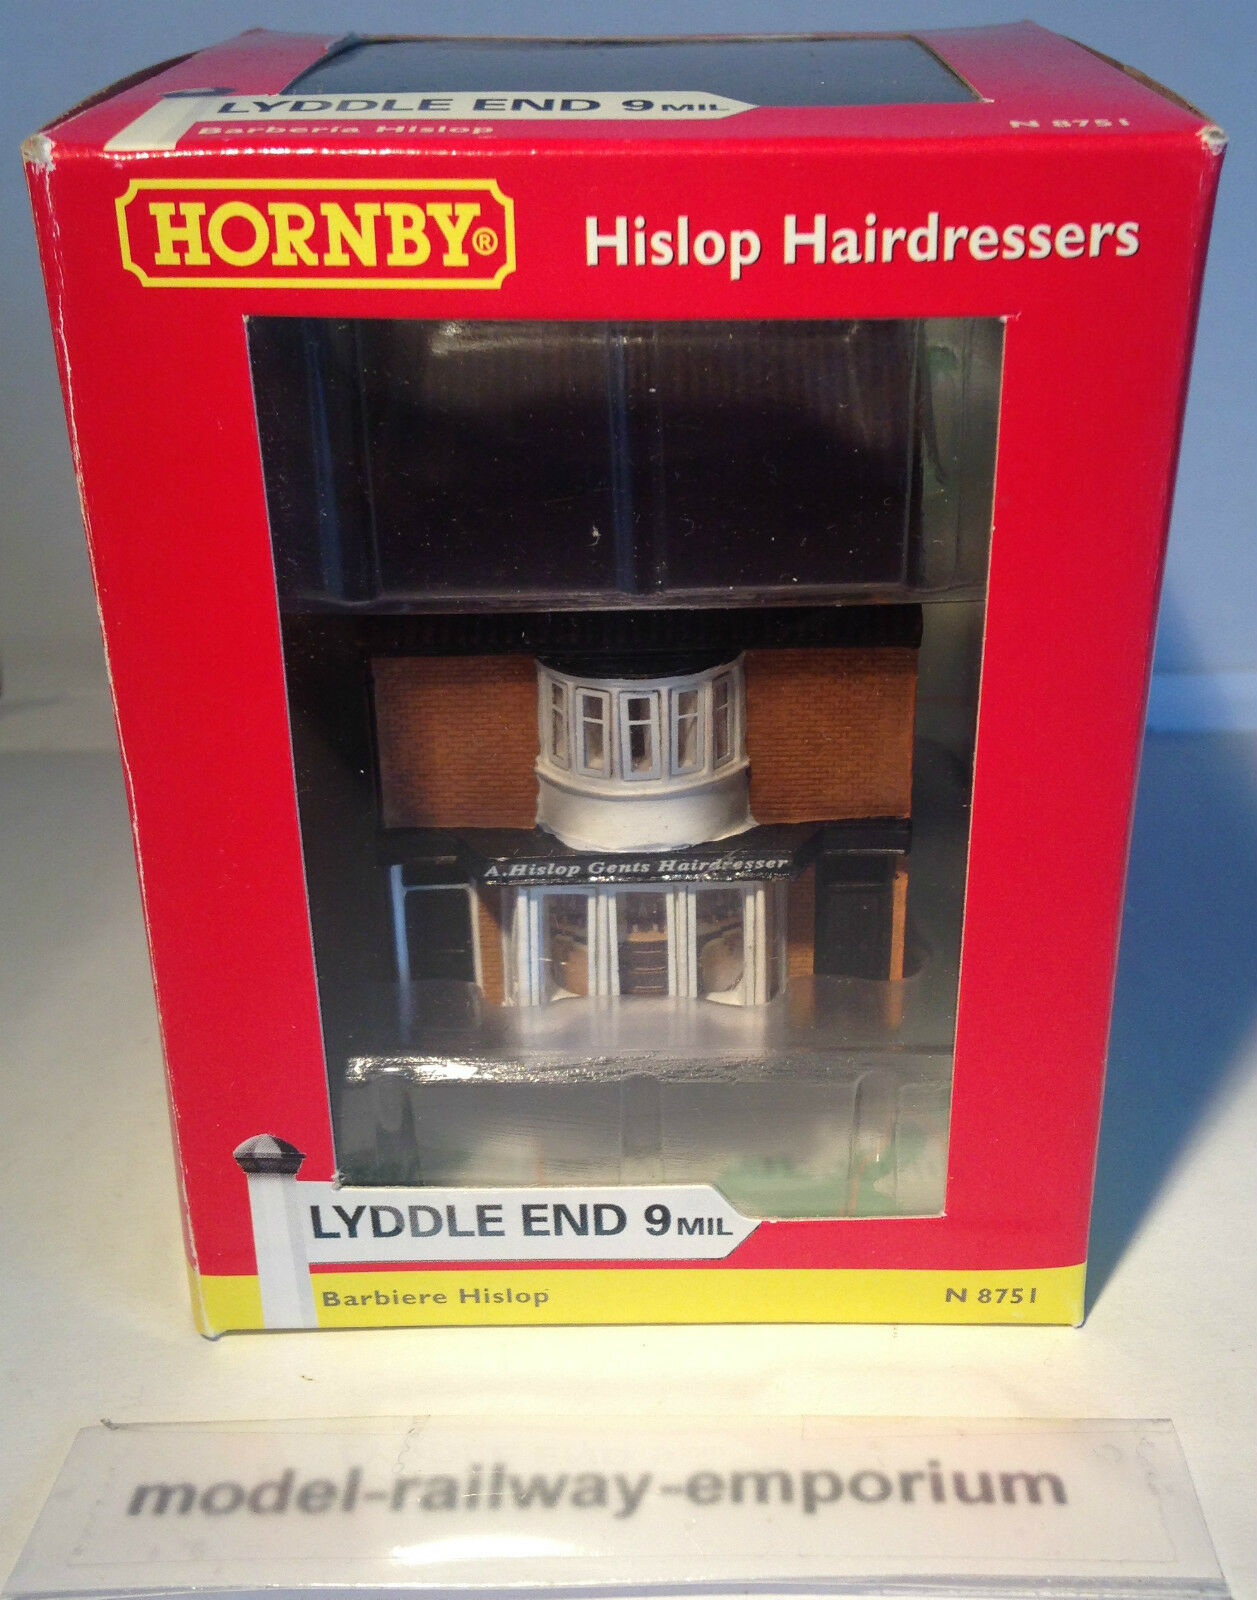 Hornby LYDDLE END - N8751 - HISLOP HAIRDRESSERS HAIRDRESSERS HAIRDRESSERS BARBERS RARE - TAKE A LOOK BOXED d8520e